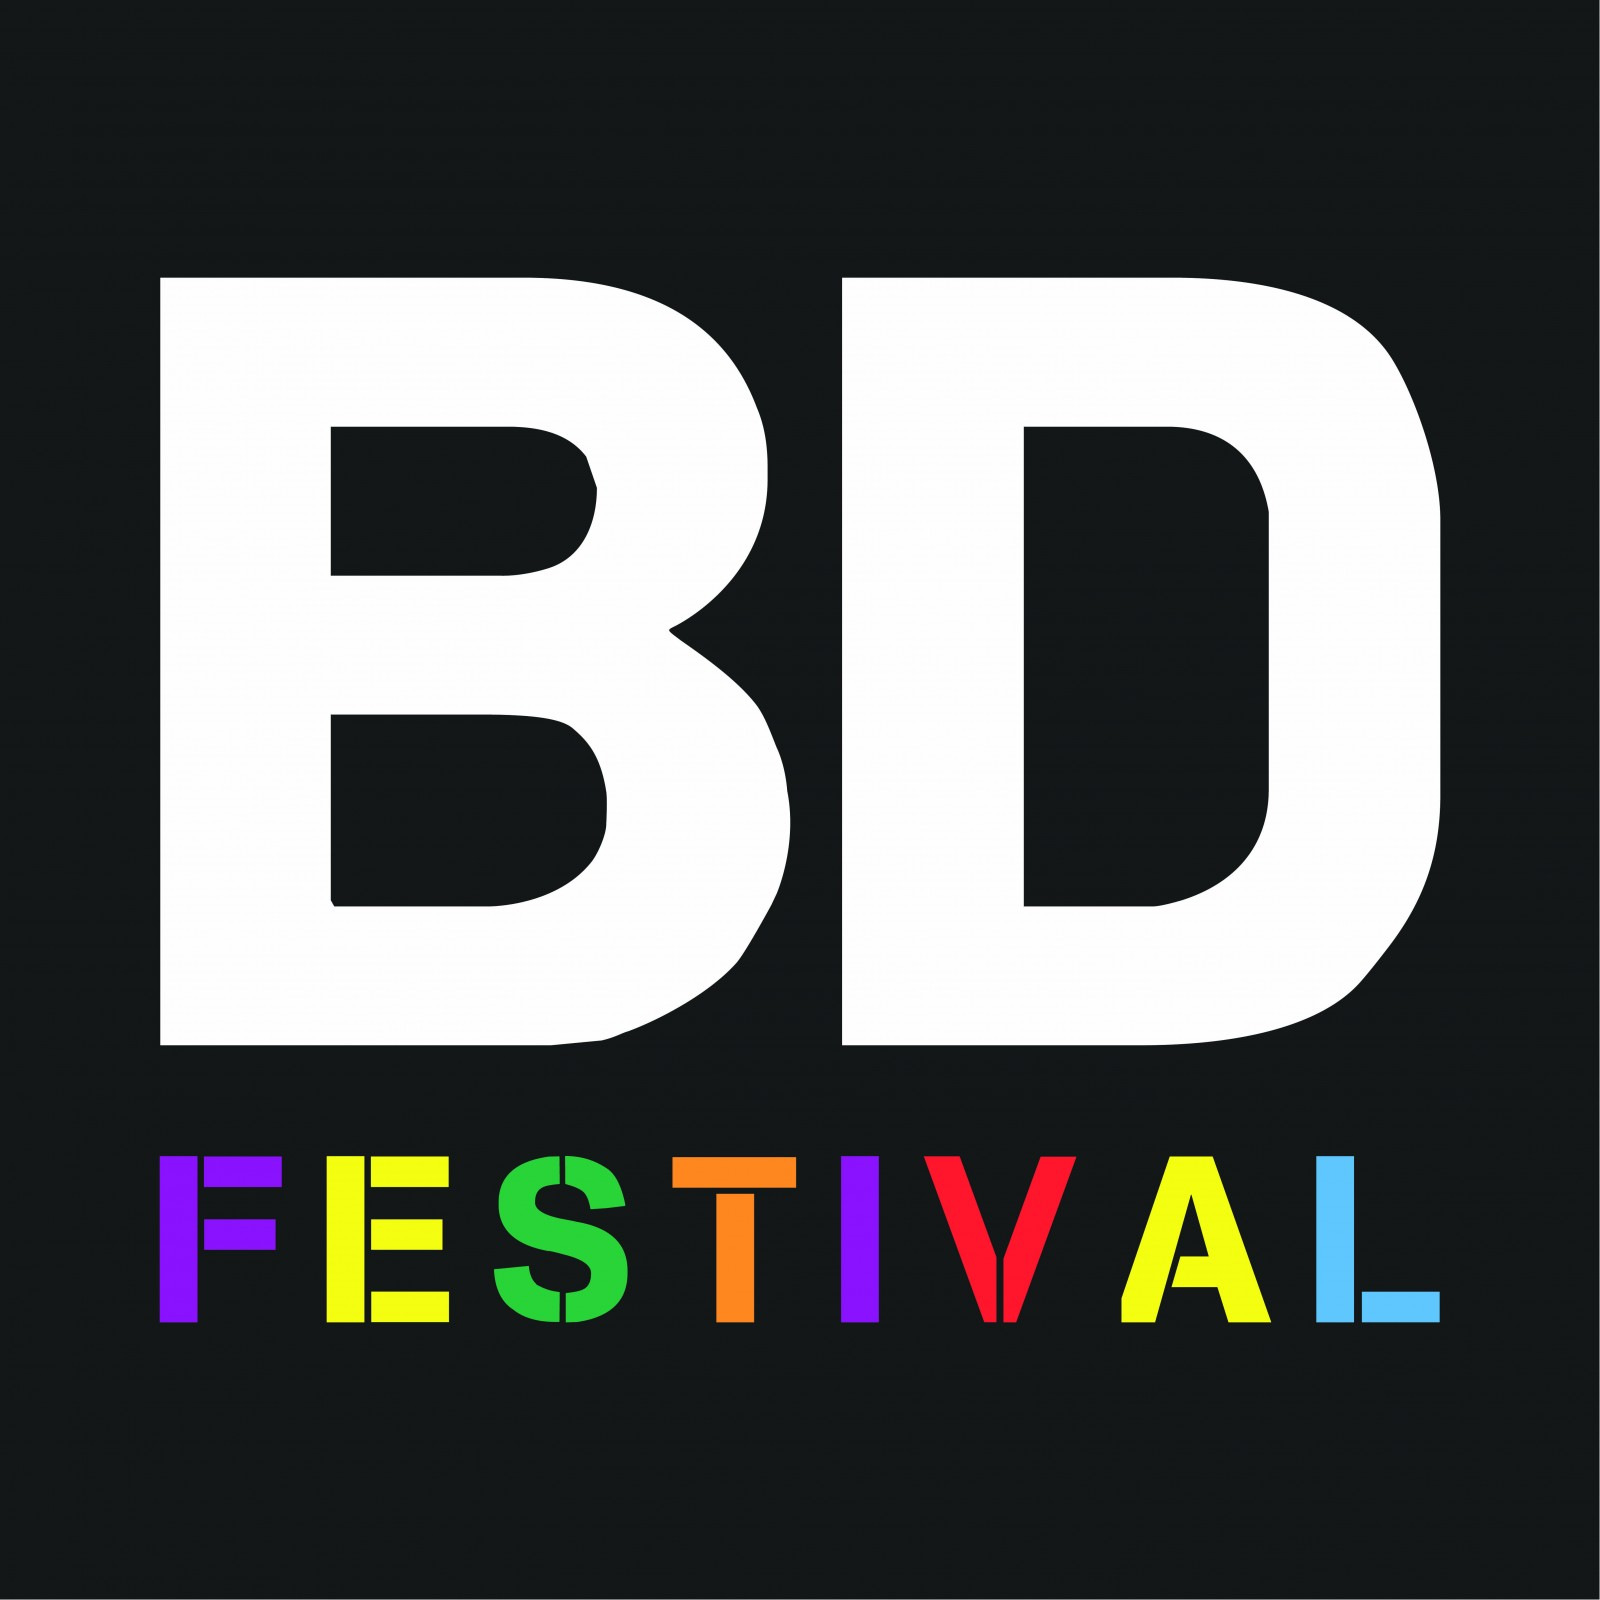 Find out more about BD Festival 2017